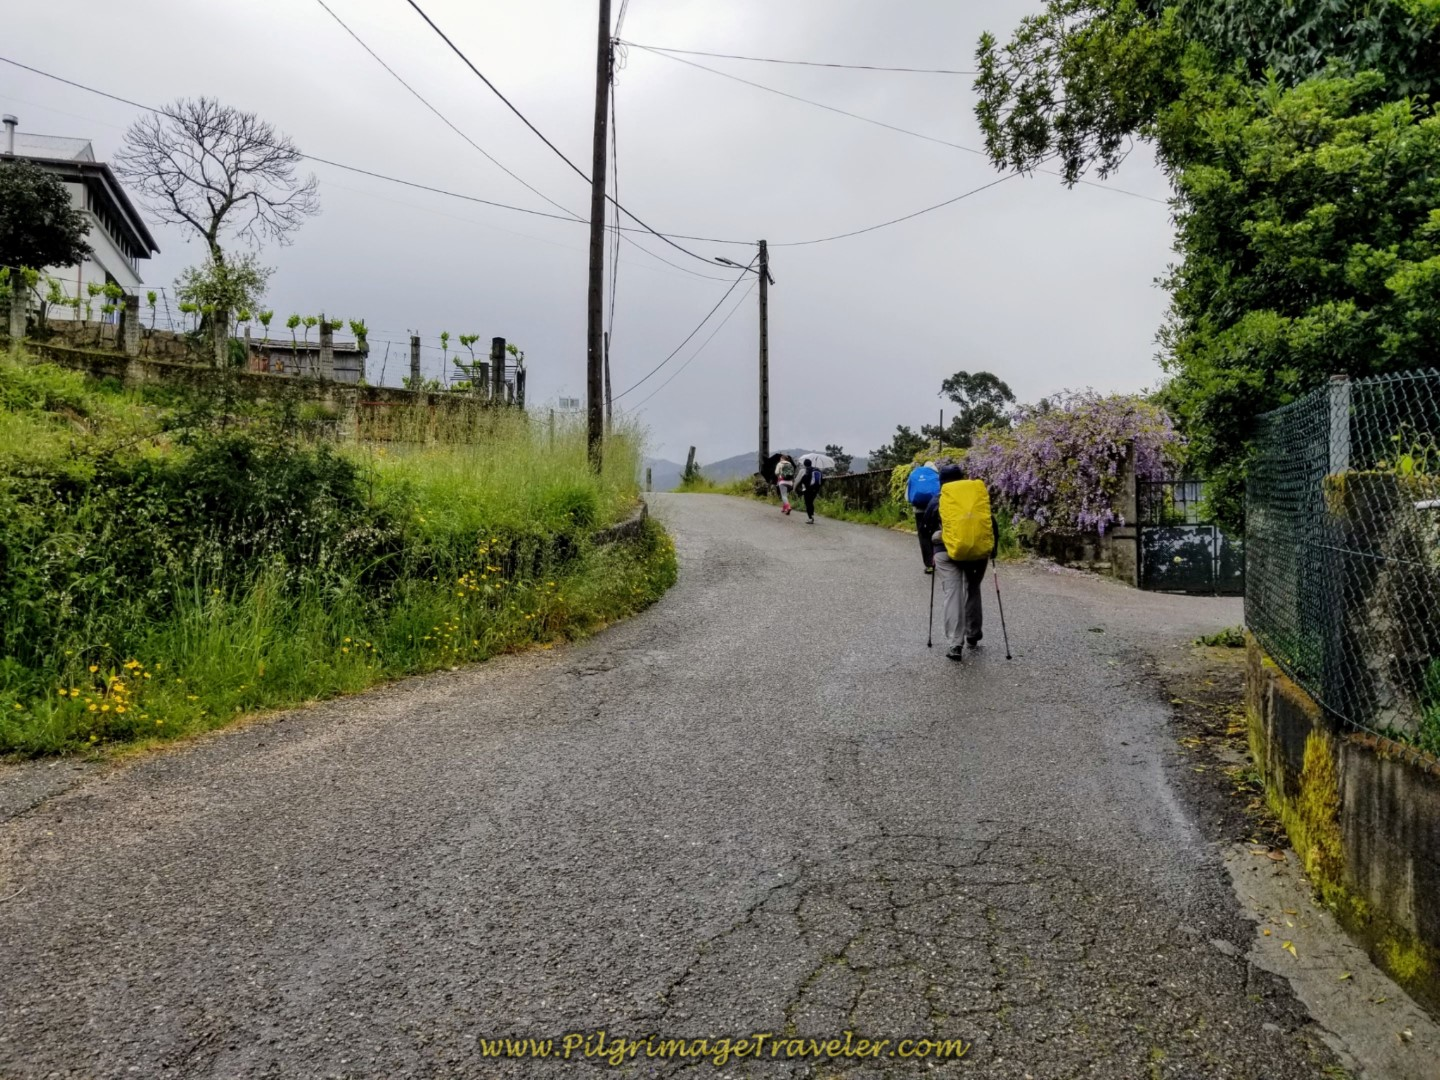 Small hill climb on day twenty-one of the central route of the Portuguese Camino